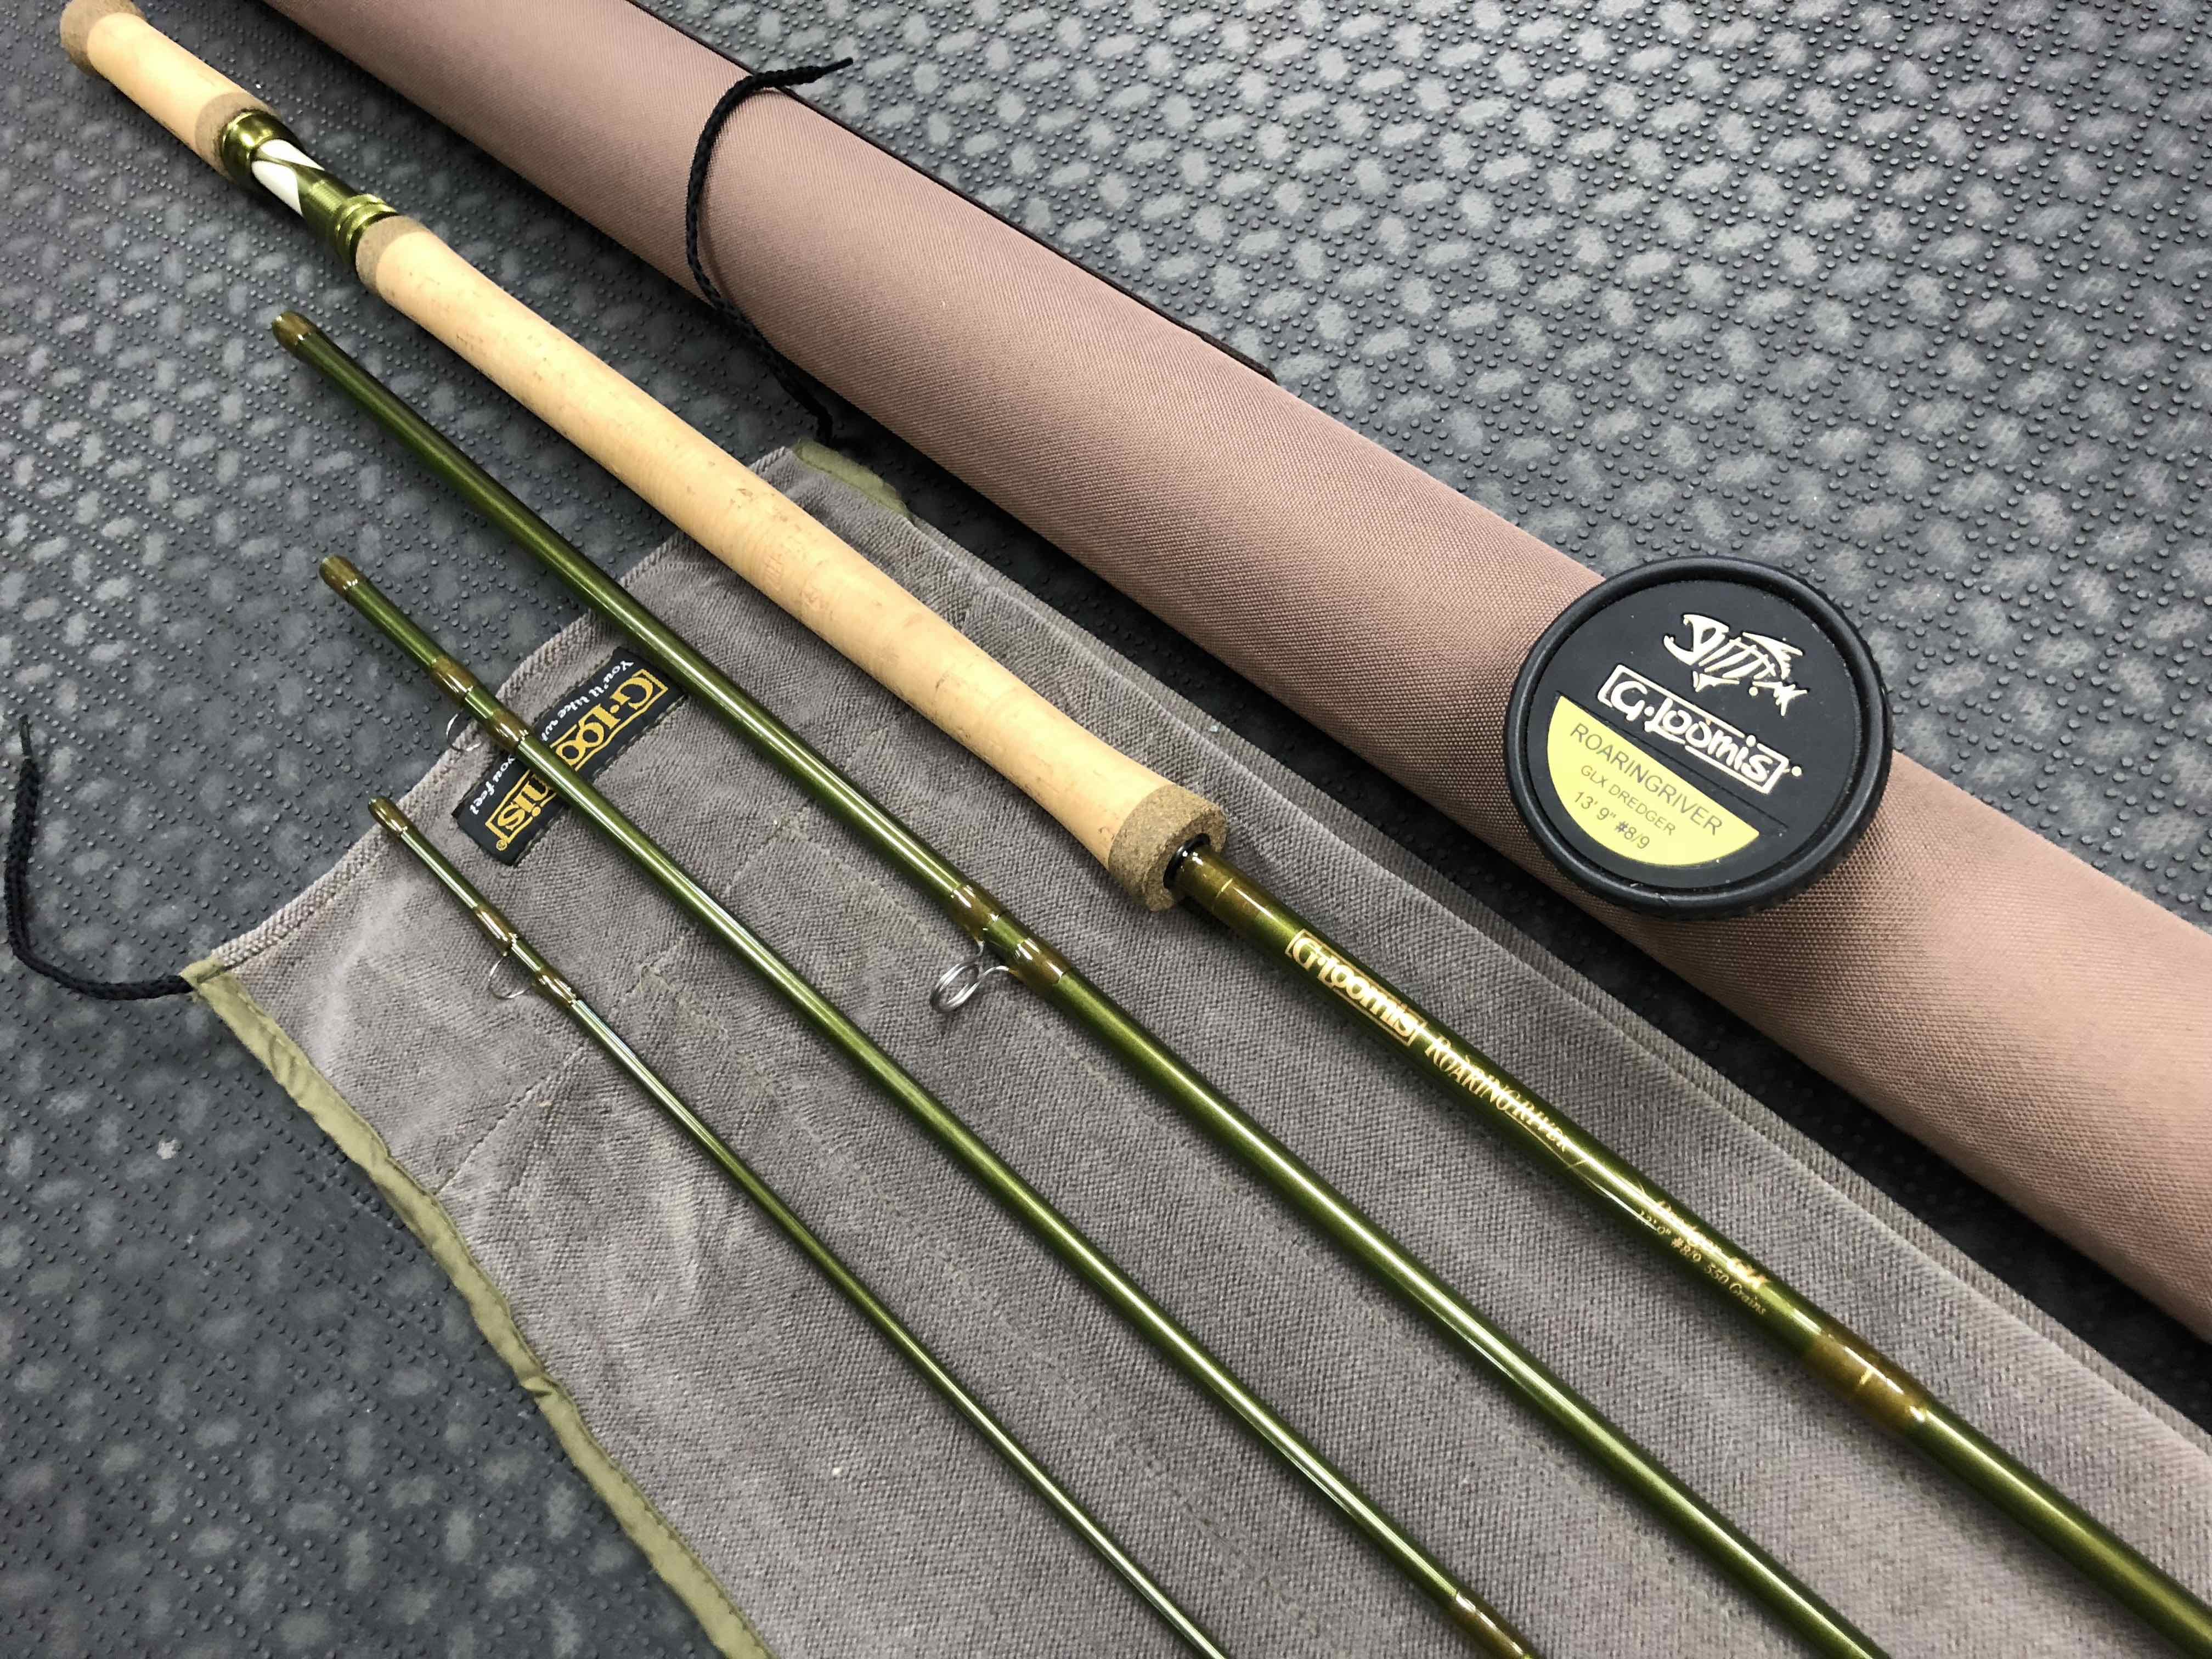 "G. Loomis Roaring River GLX Dredger 13' 9"" #8/9 4pc Spey Rod - LIKE NEW! - $450"